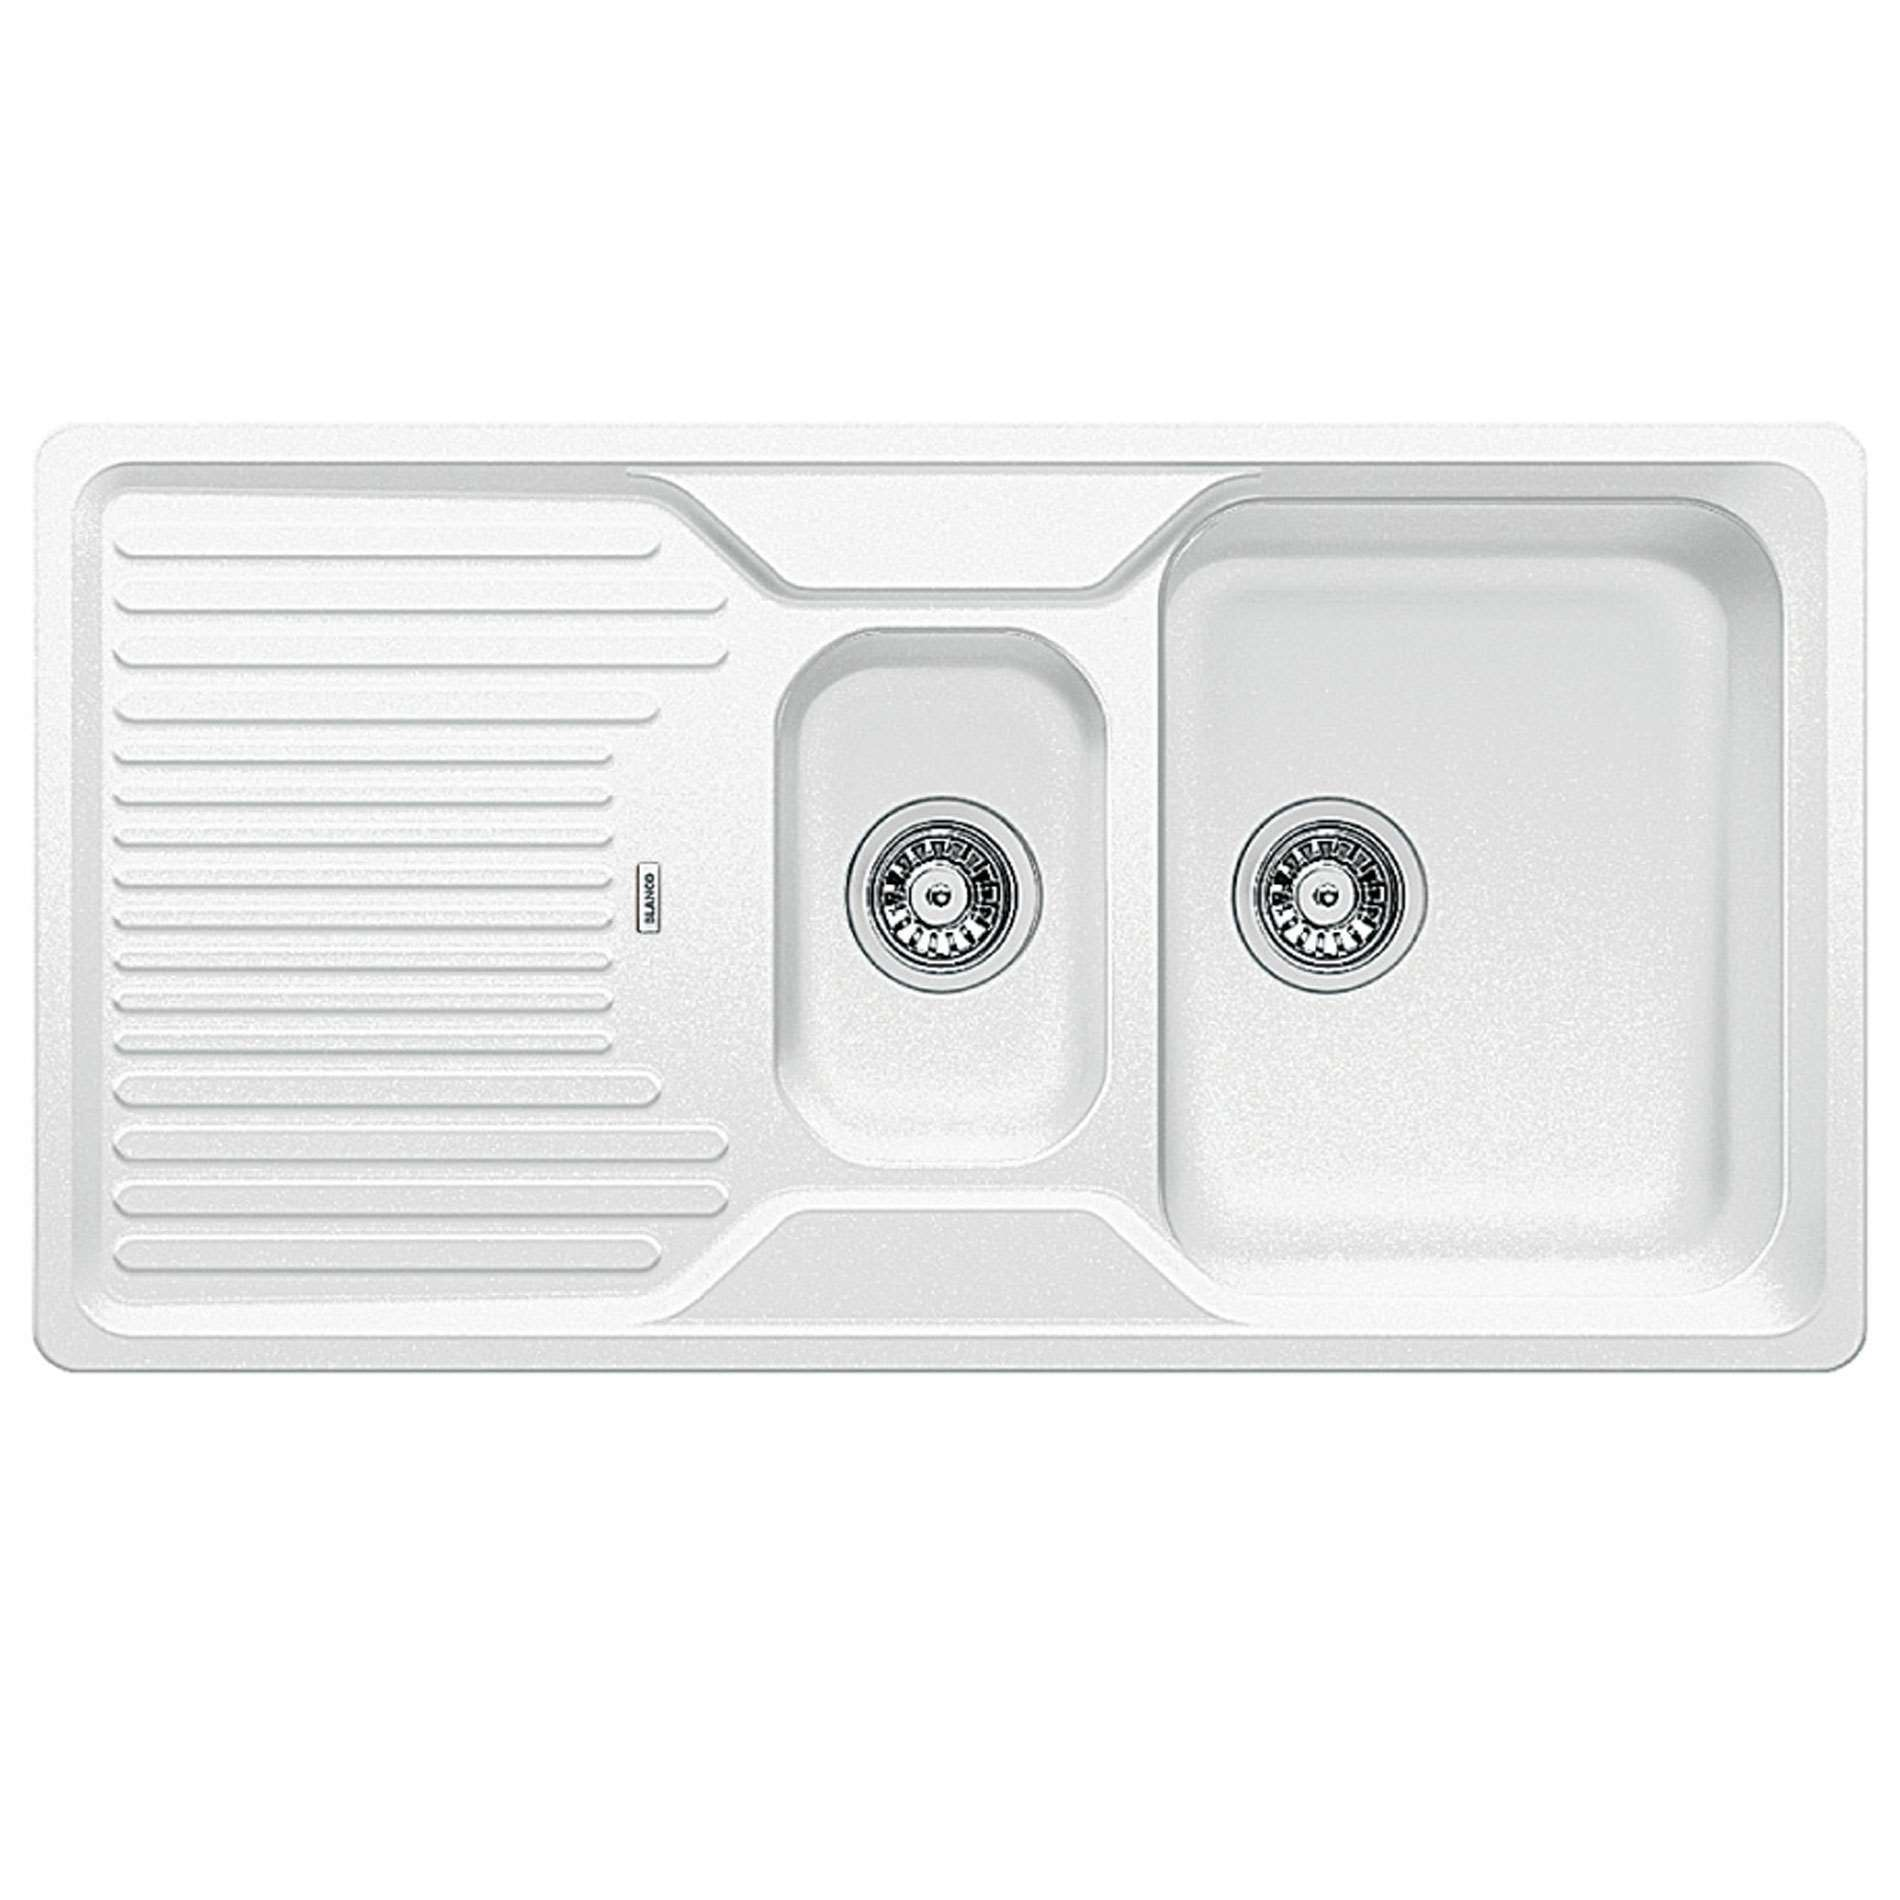 White Silgranit Sink : Blanco: Classic 6 S White Silgranit Sink - Kitchen Sinks & Taps